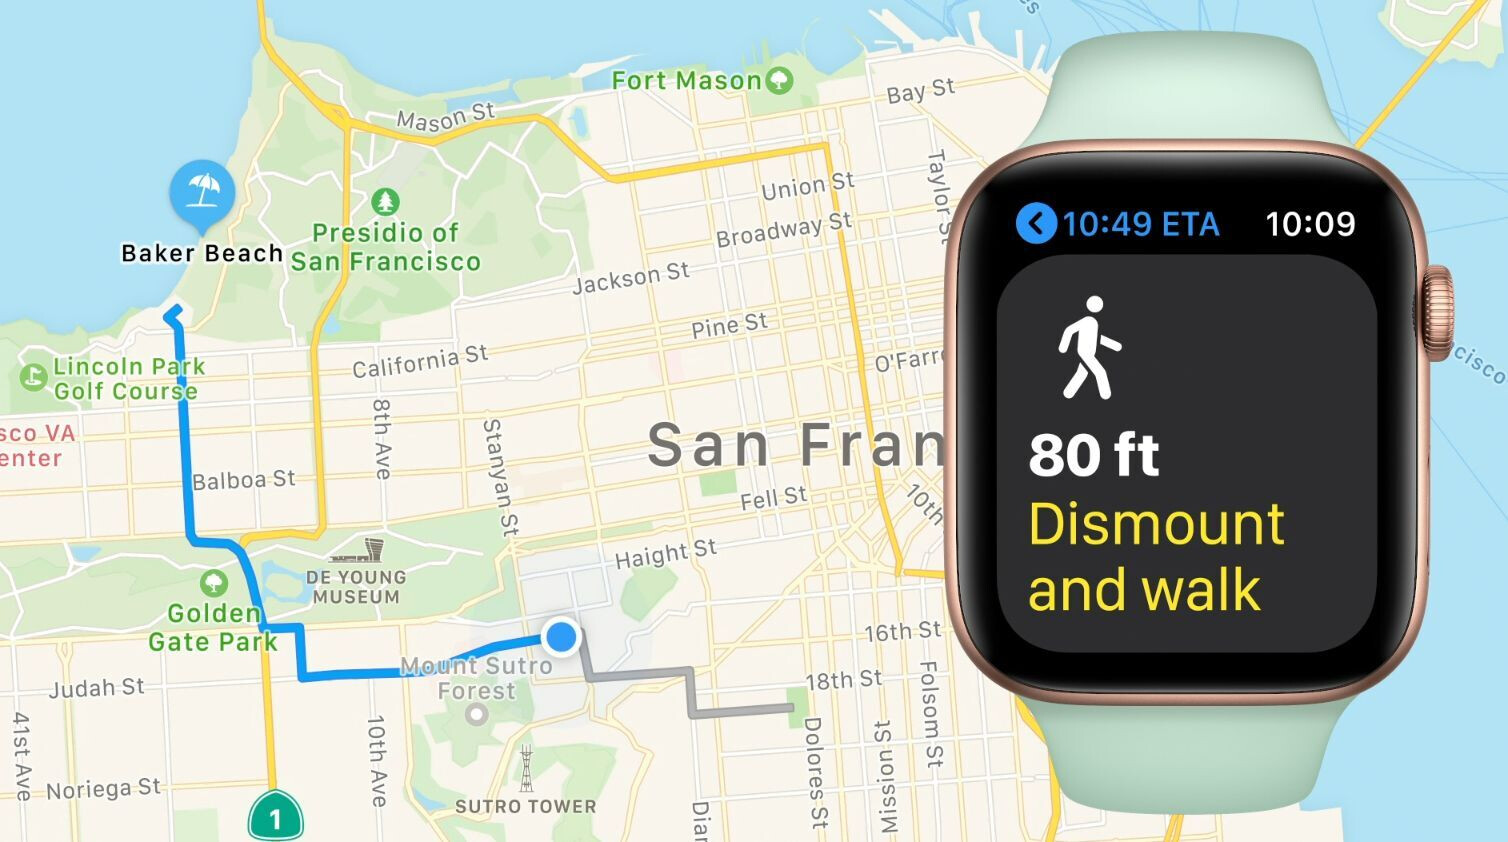 cycling directions will also be displayed - watchOS 7 brings richer watch faces, sleep tracking, new workouts, handwash detection, and more